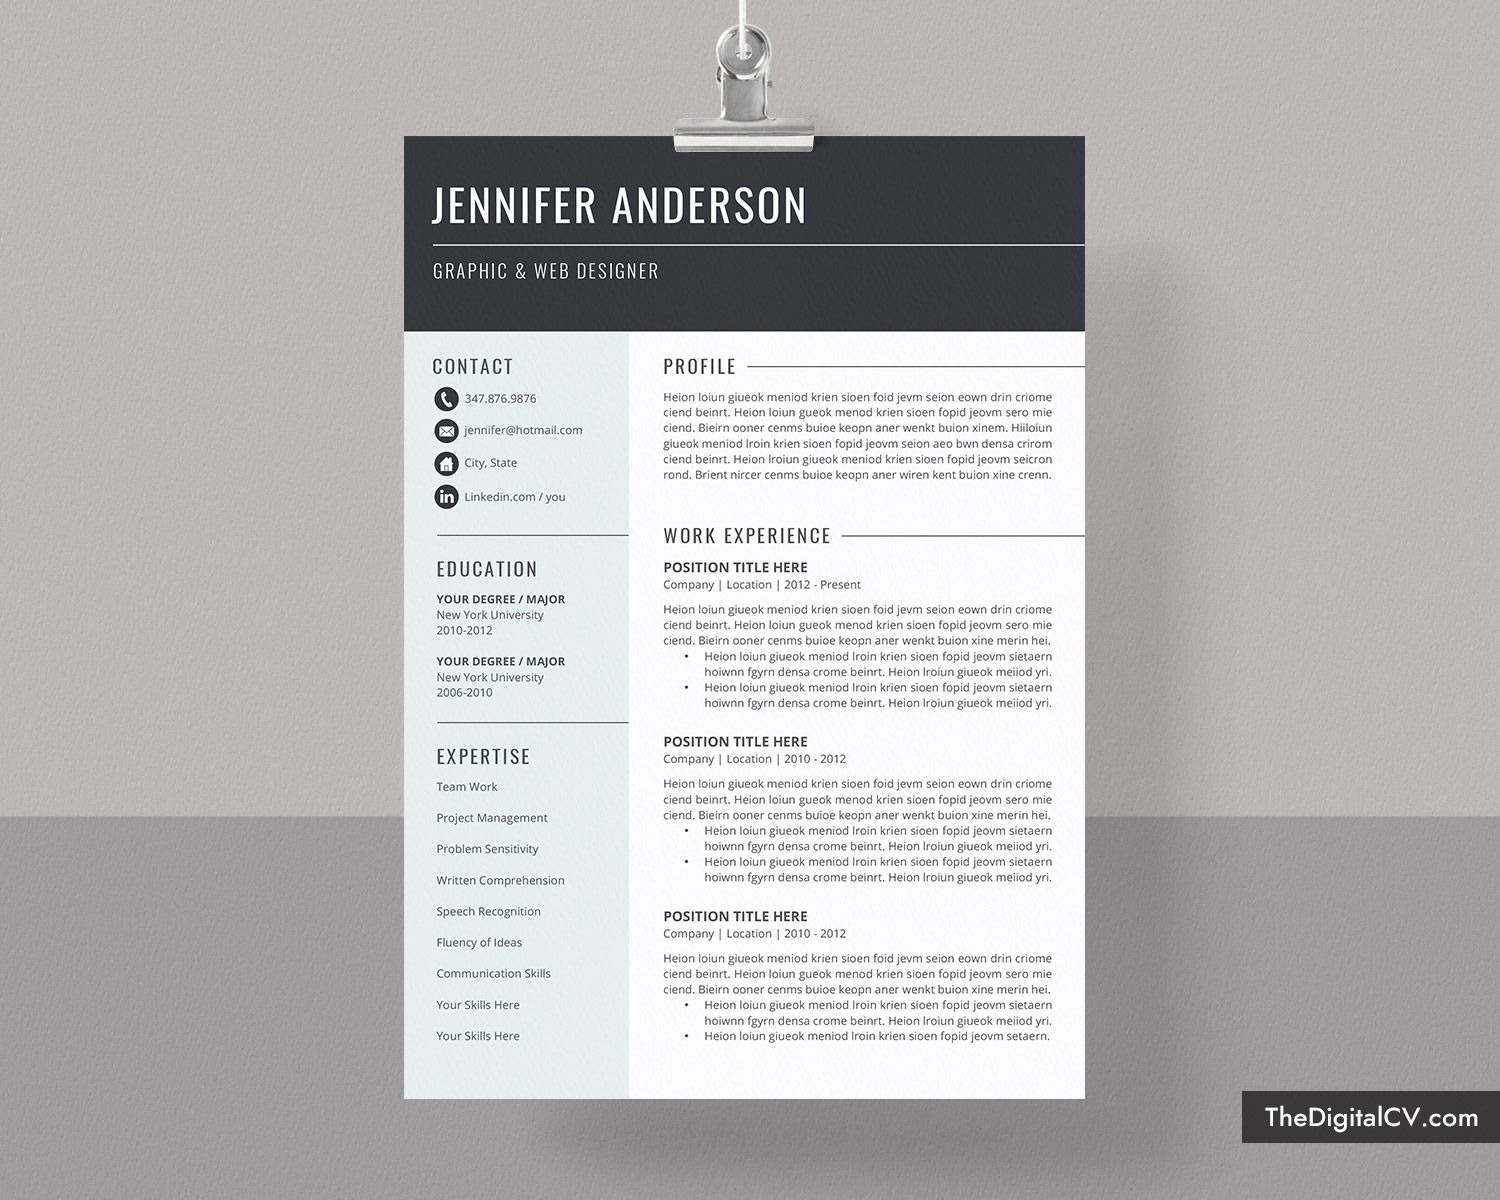 basic and simple resume template cv cover letter microsoft wor free word best designs Resume Best Resume Designs 2021